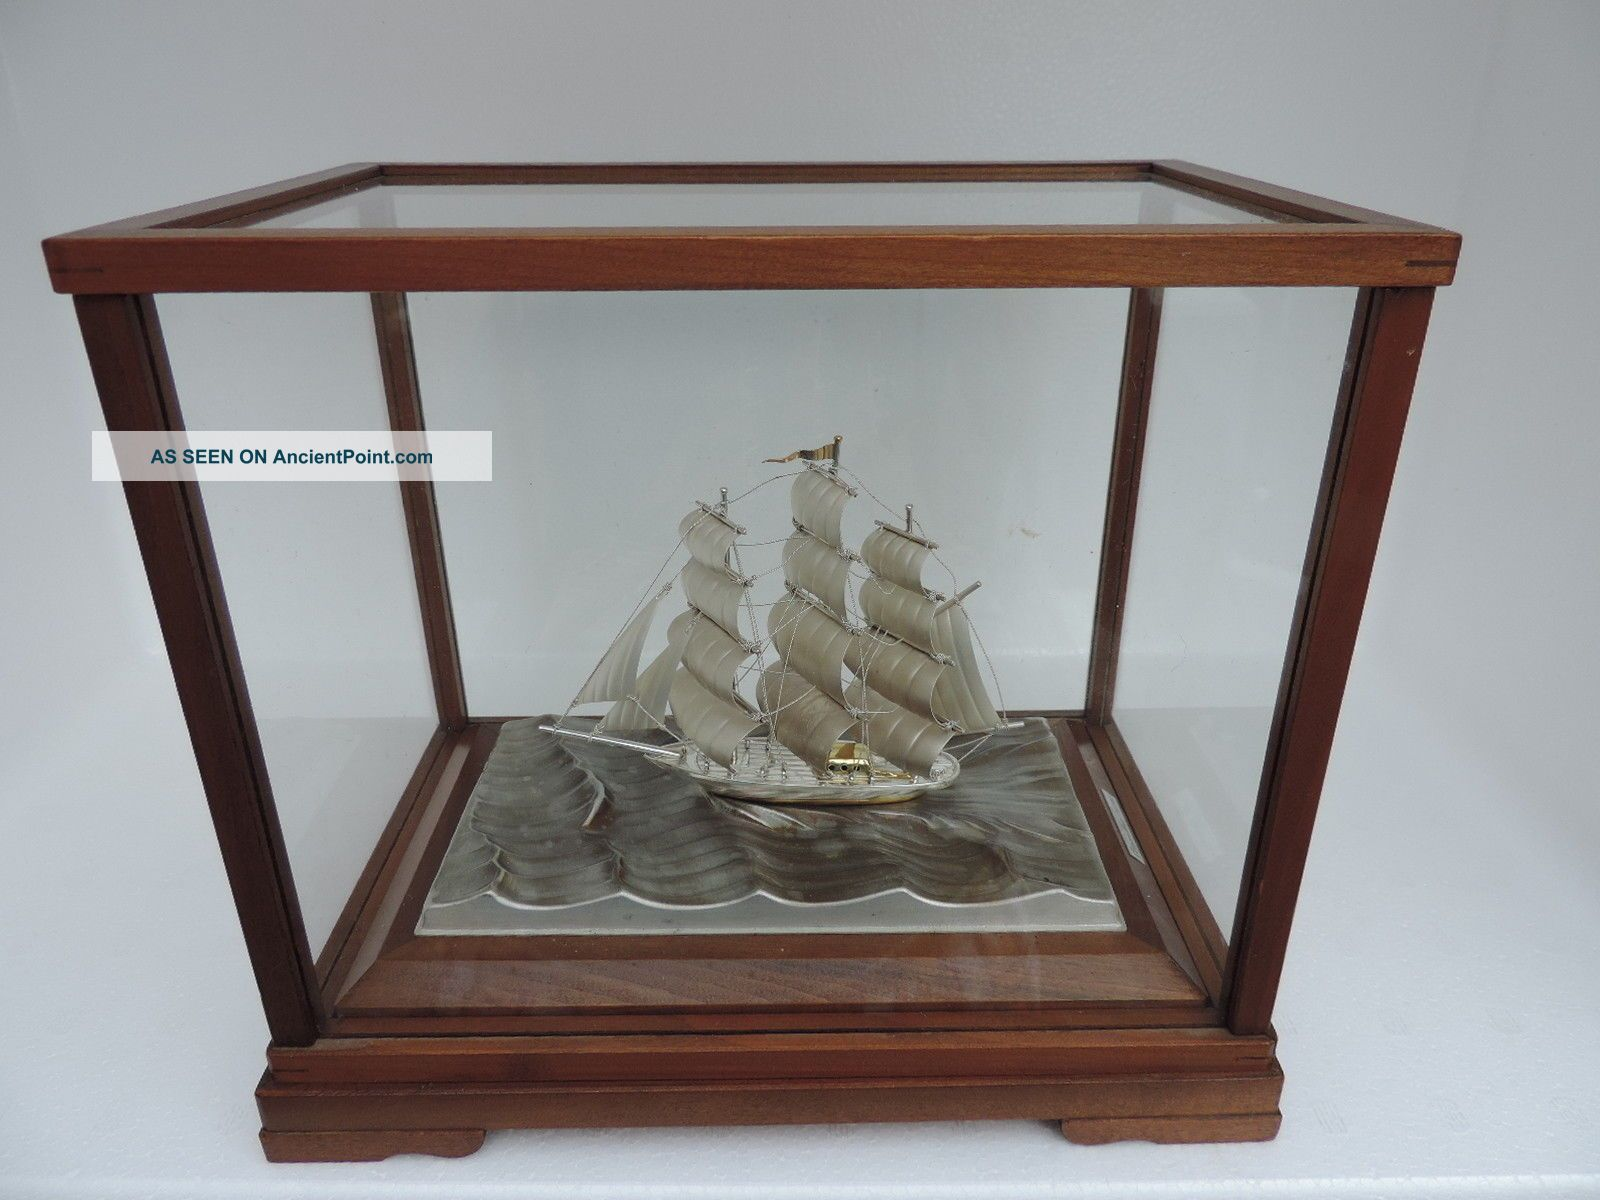 Finest Signed Japanese 3 Masted Sterling Silver 985 Clipper Ship Takehiko Japan Other Antique Sterling Silver photo